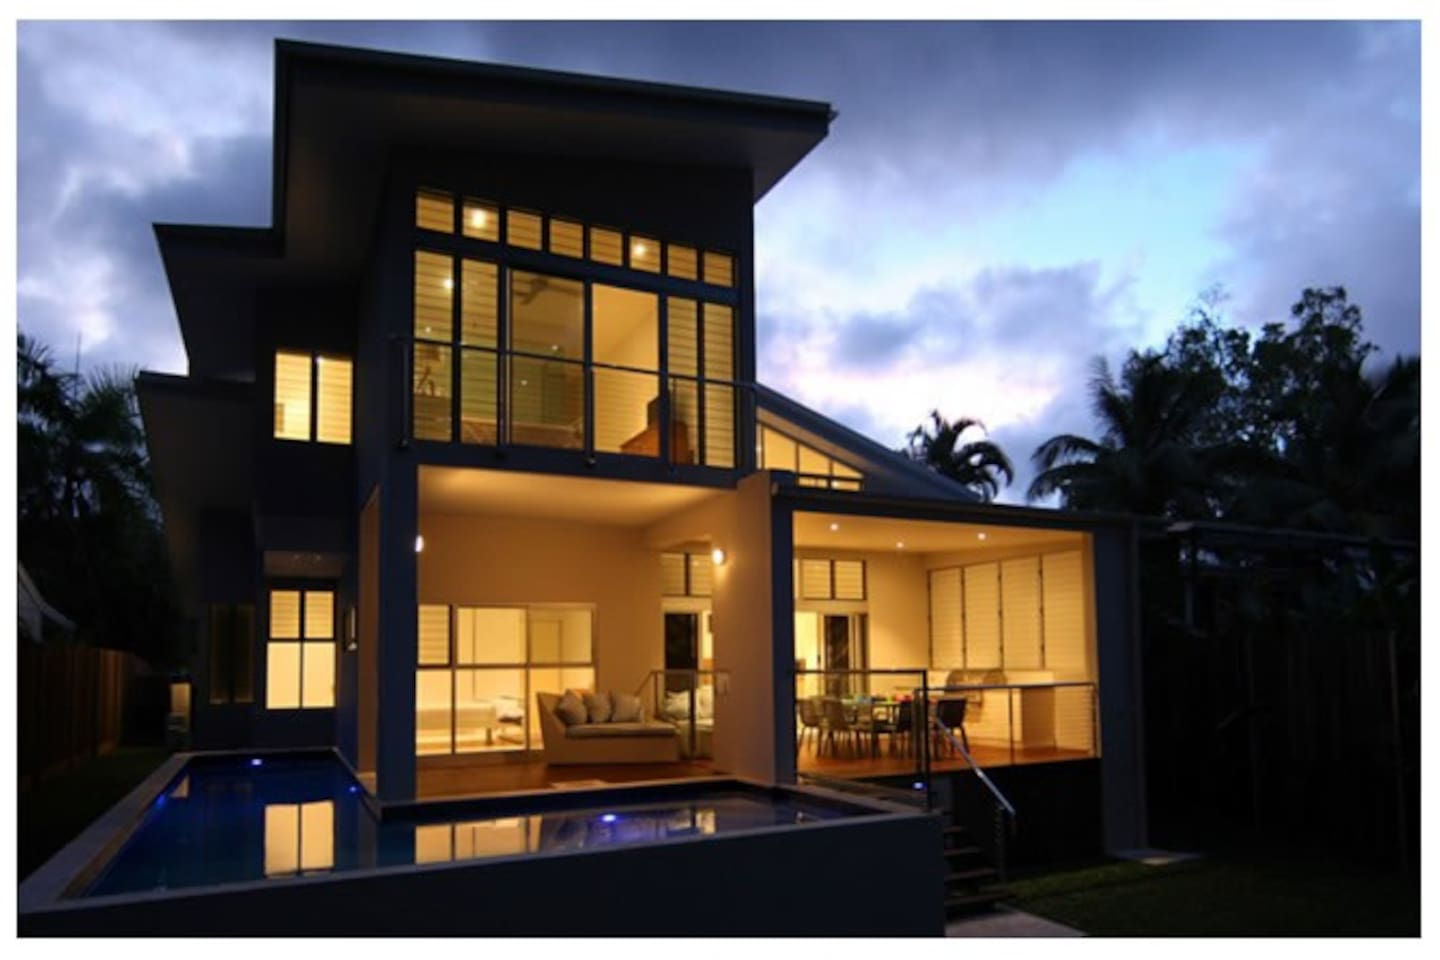 Bramston Beach House is a state-of-the-art beachfront home, complete with a wrap-around pool and a spacious floor plan perfect for relaxing and entertaining. Perfect for couples and families.